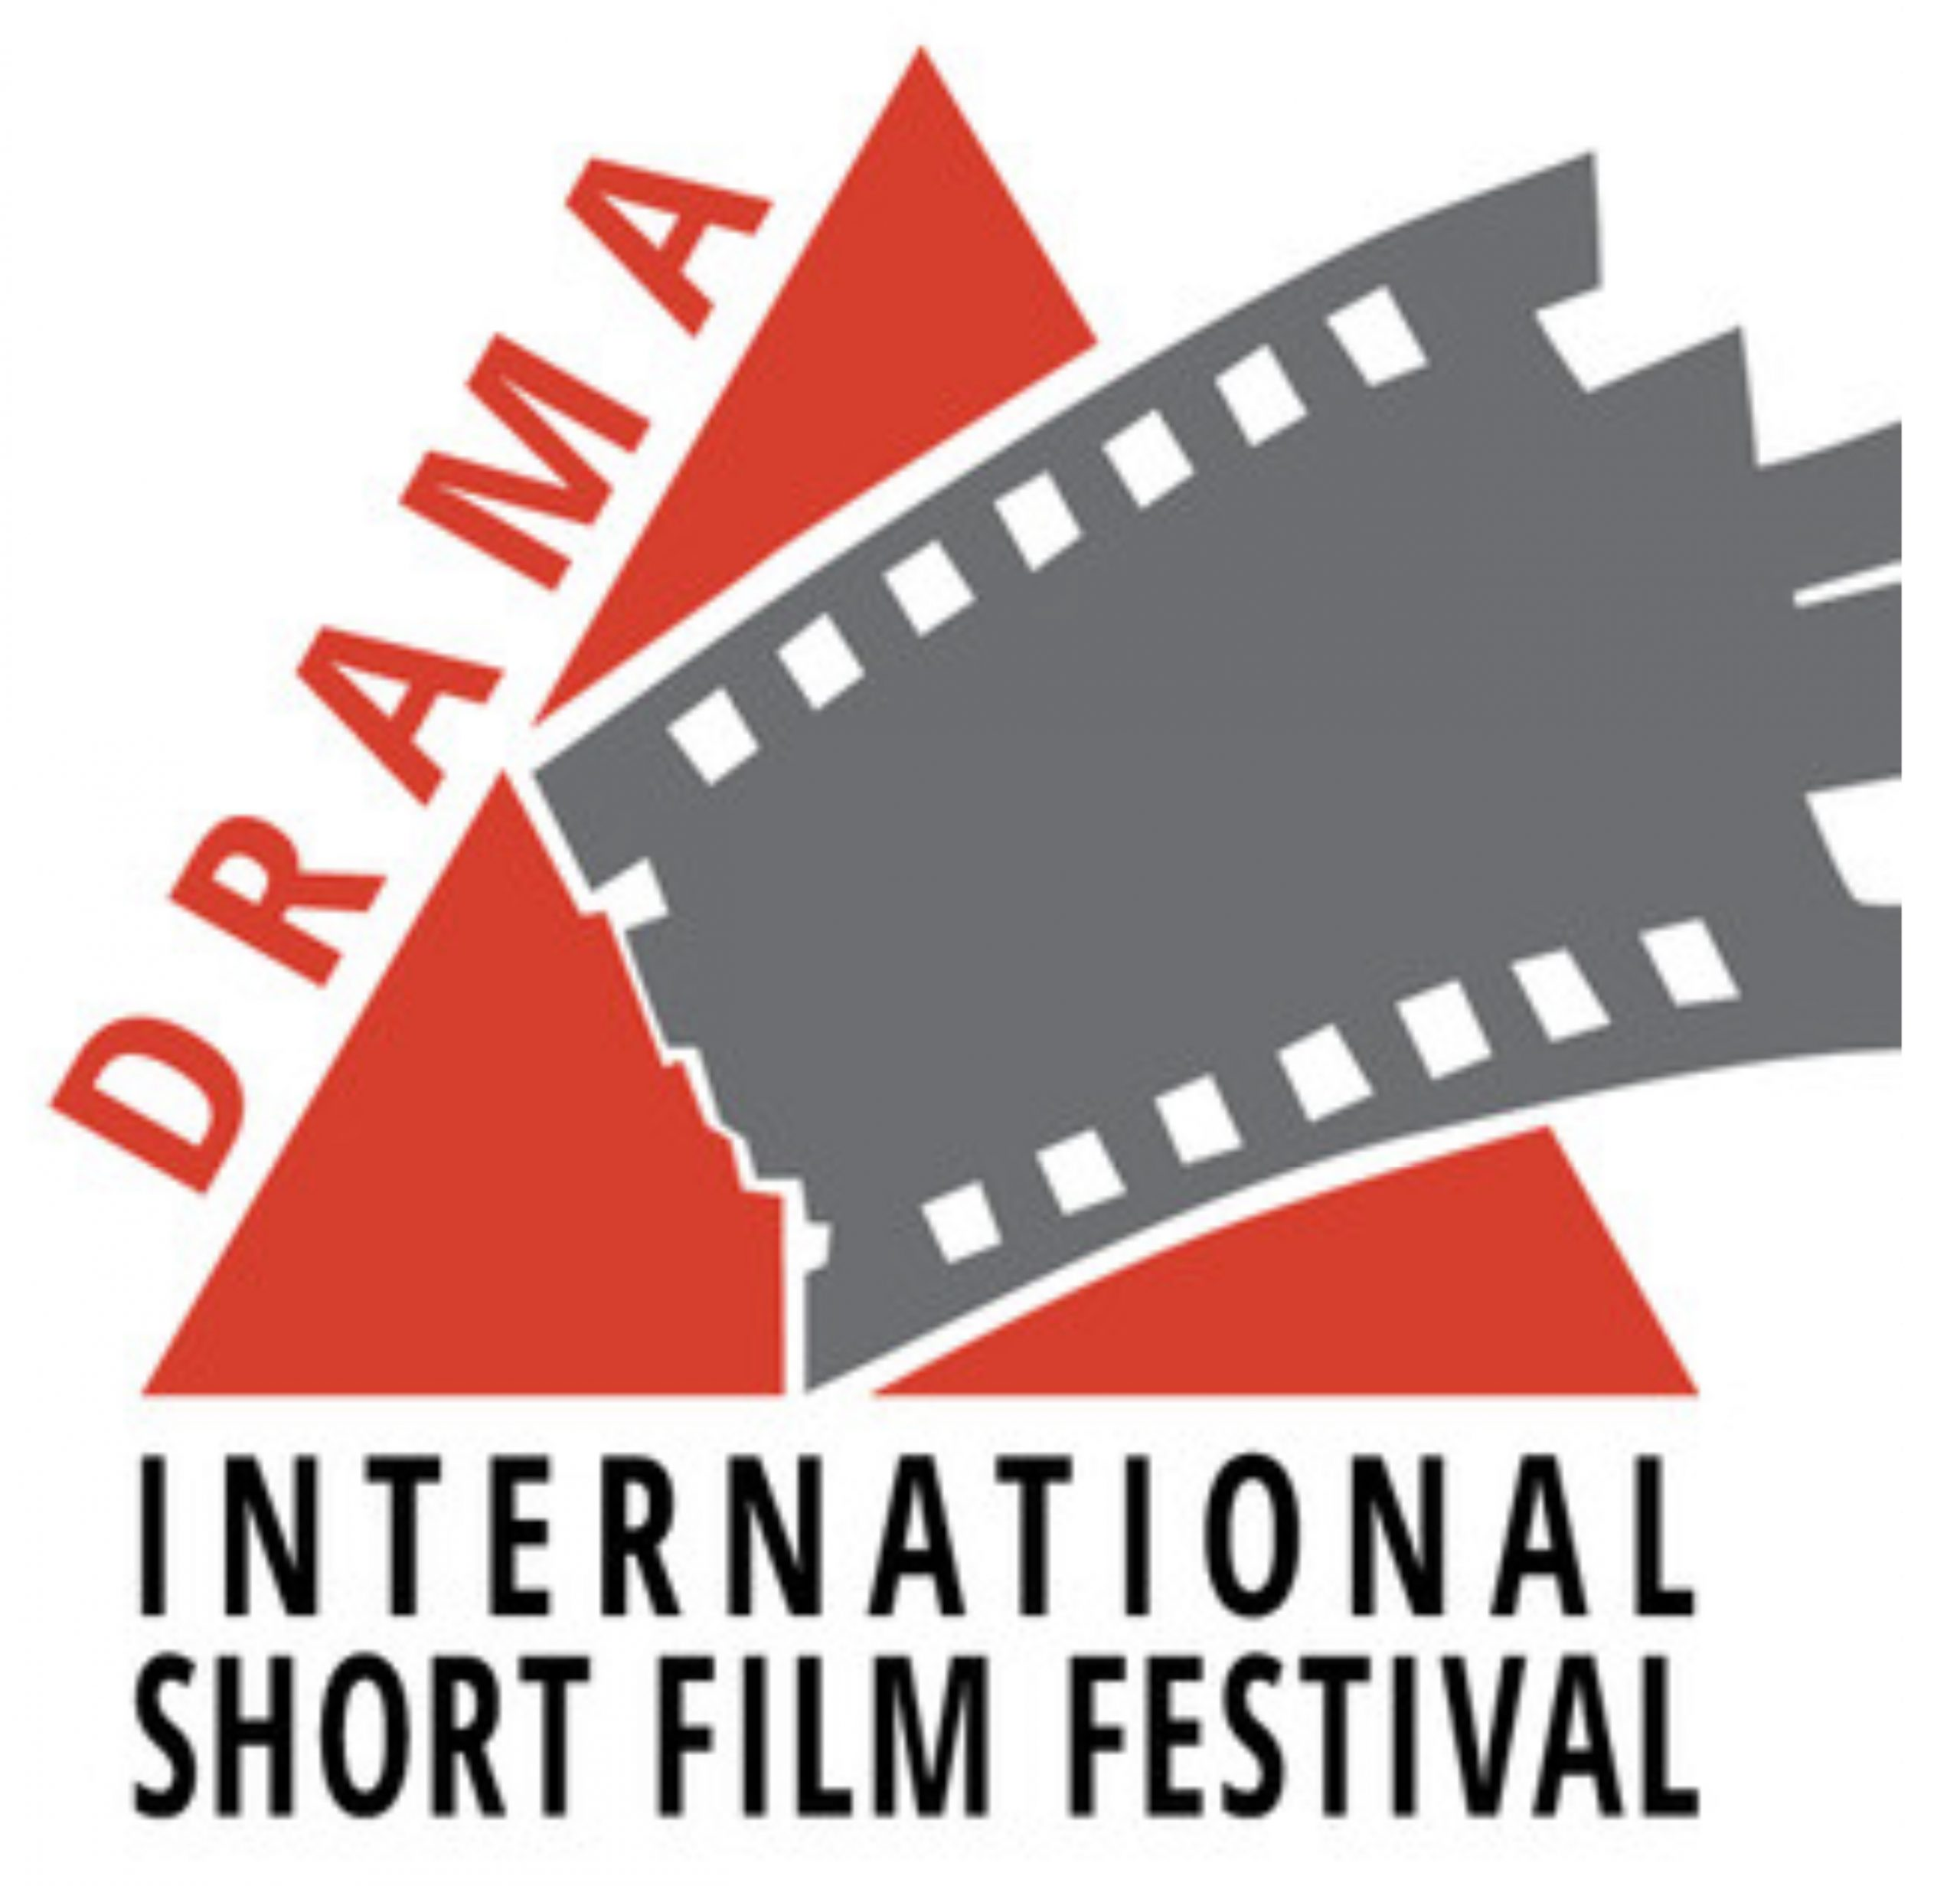 Drama International Short Film Festival